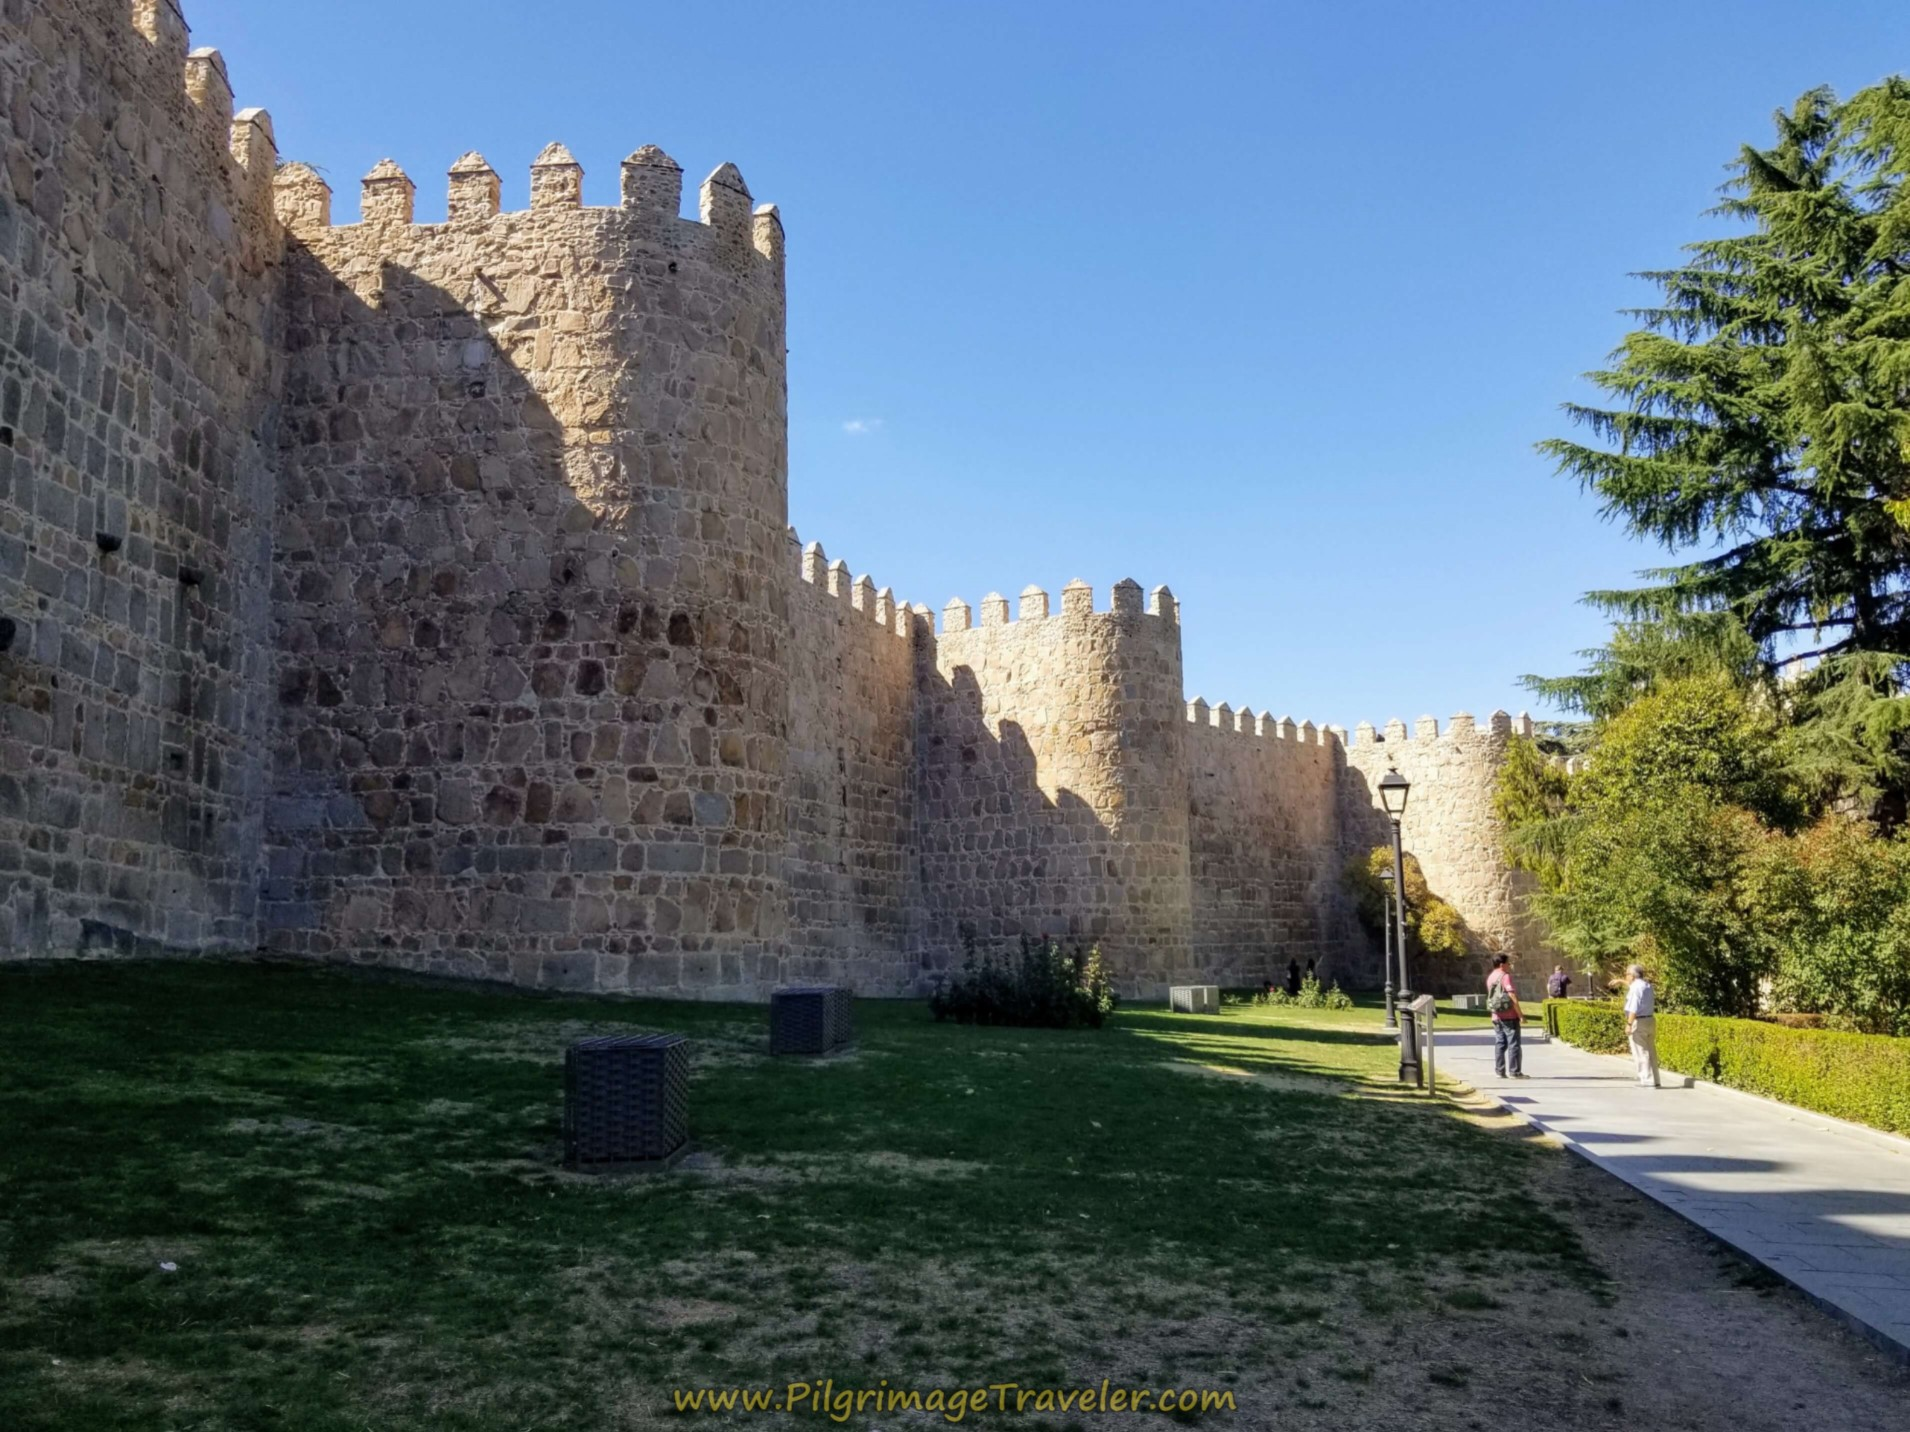 The East Walls of Ávila